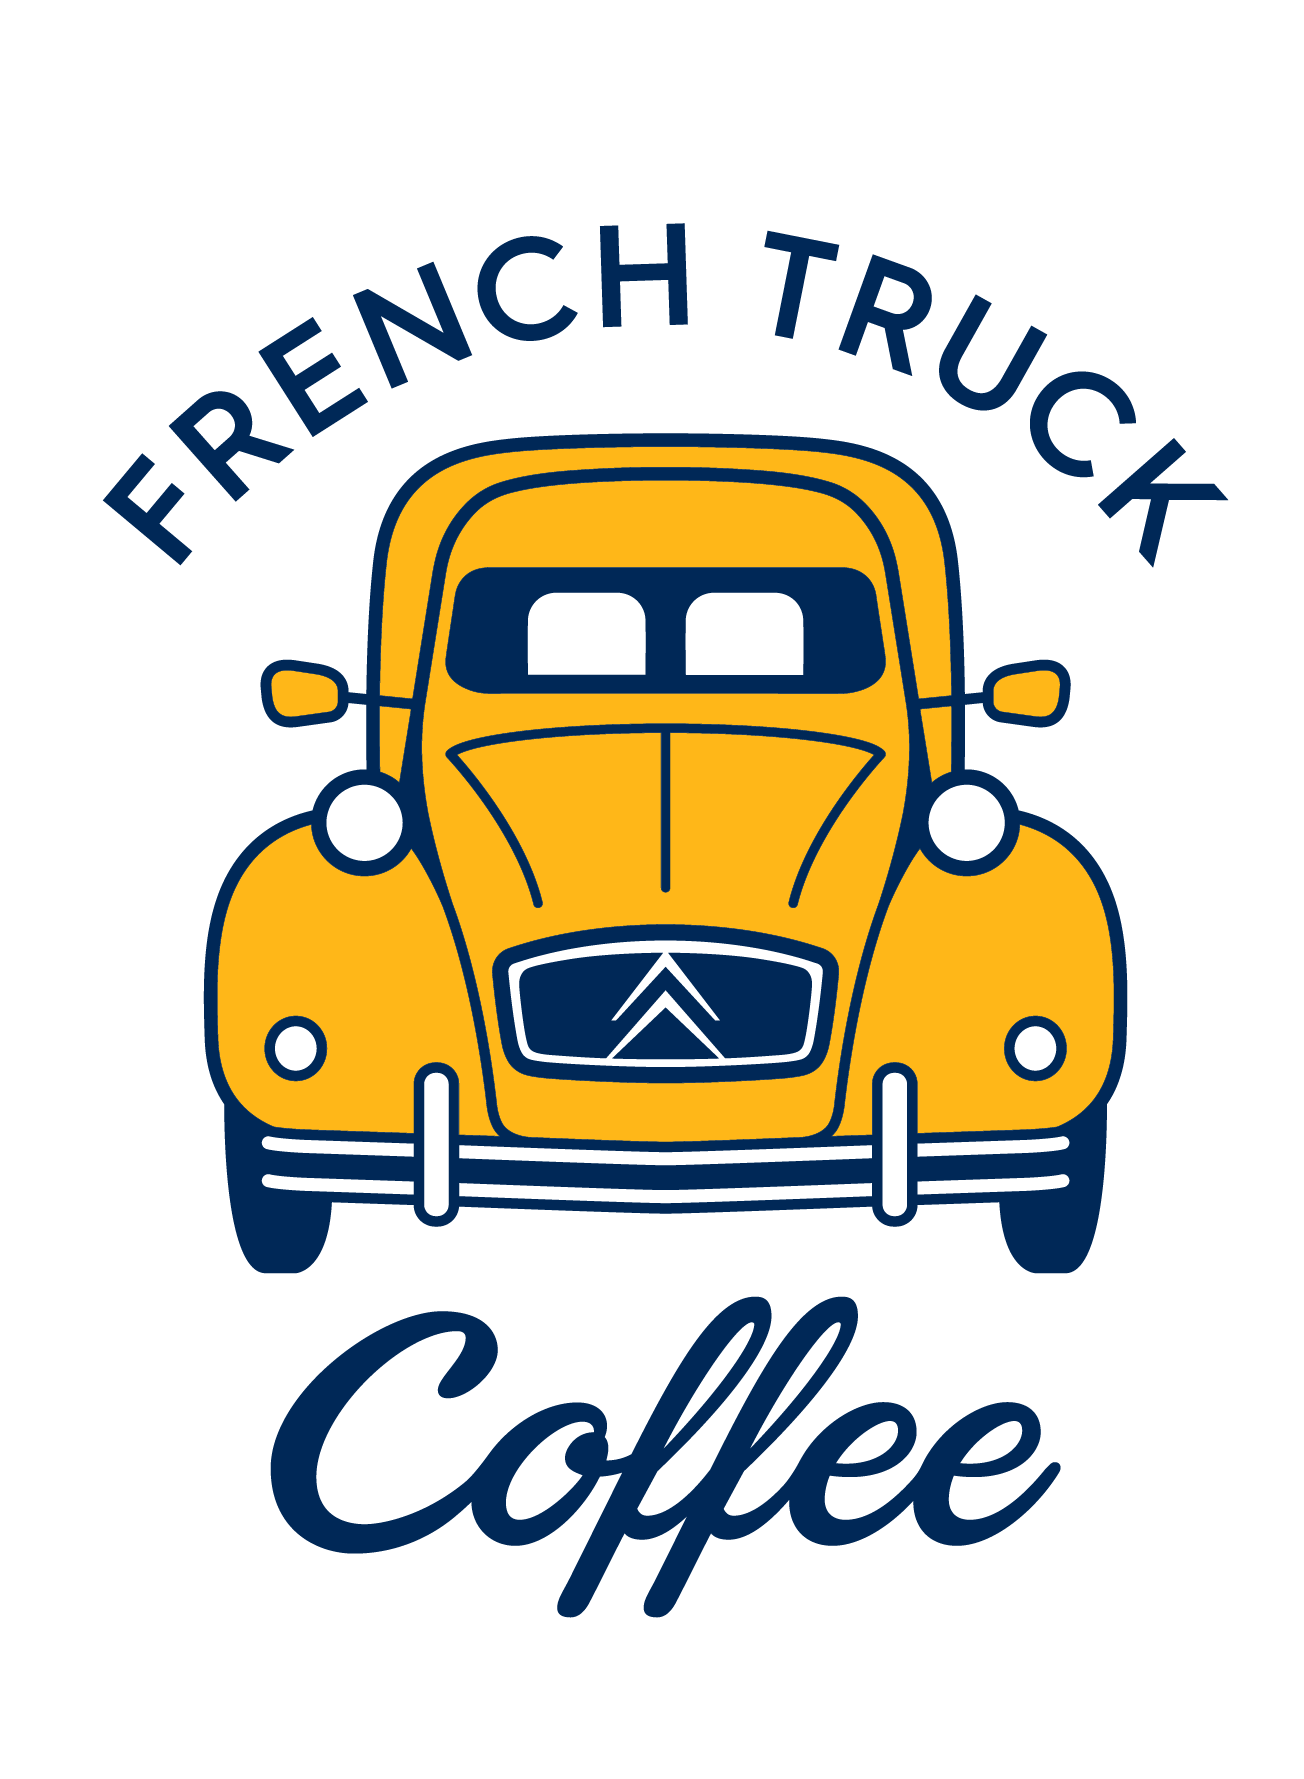 French Truck Coffee.png